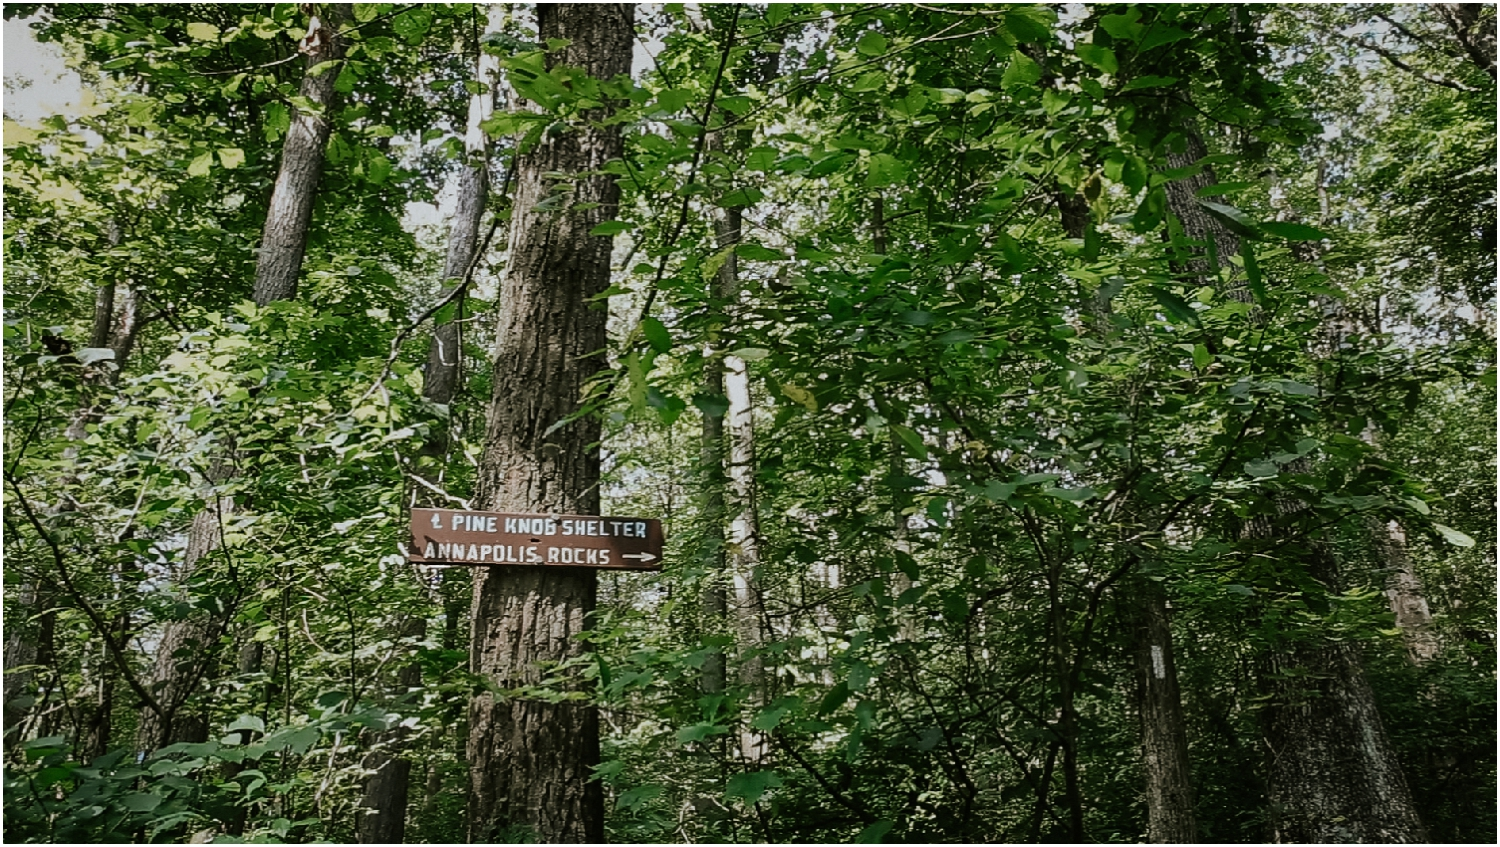 katy-sergent-photography-proposal-appalachian-trail-annapolis-rocks-adventurous-wedding-couples-intimate-elopement-hiking-backpacking-camping-photographer-johnson-city-tn-northeast-tennessee_0008.jpg